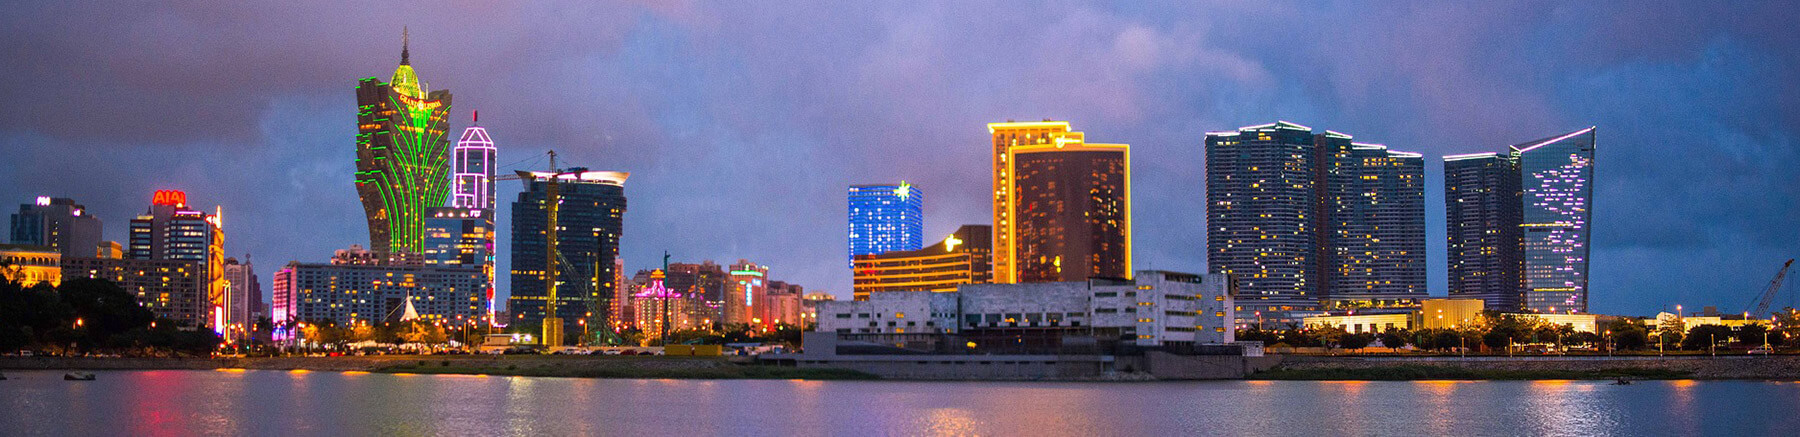 Panoramic view of Macao by night